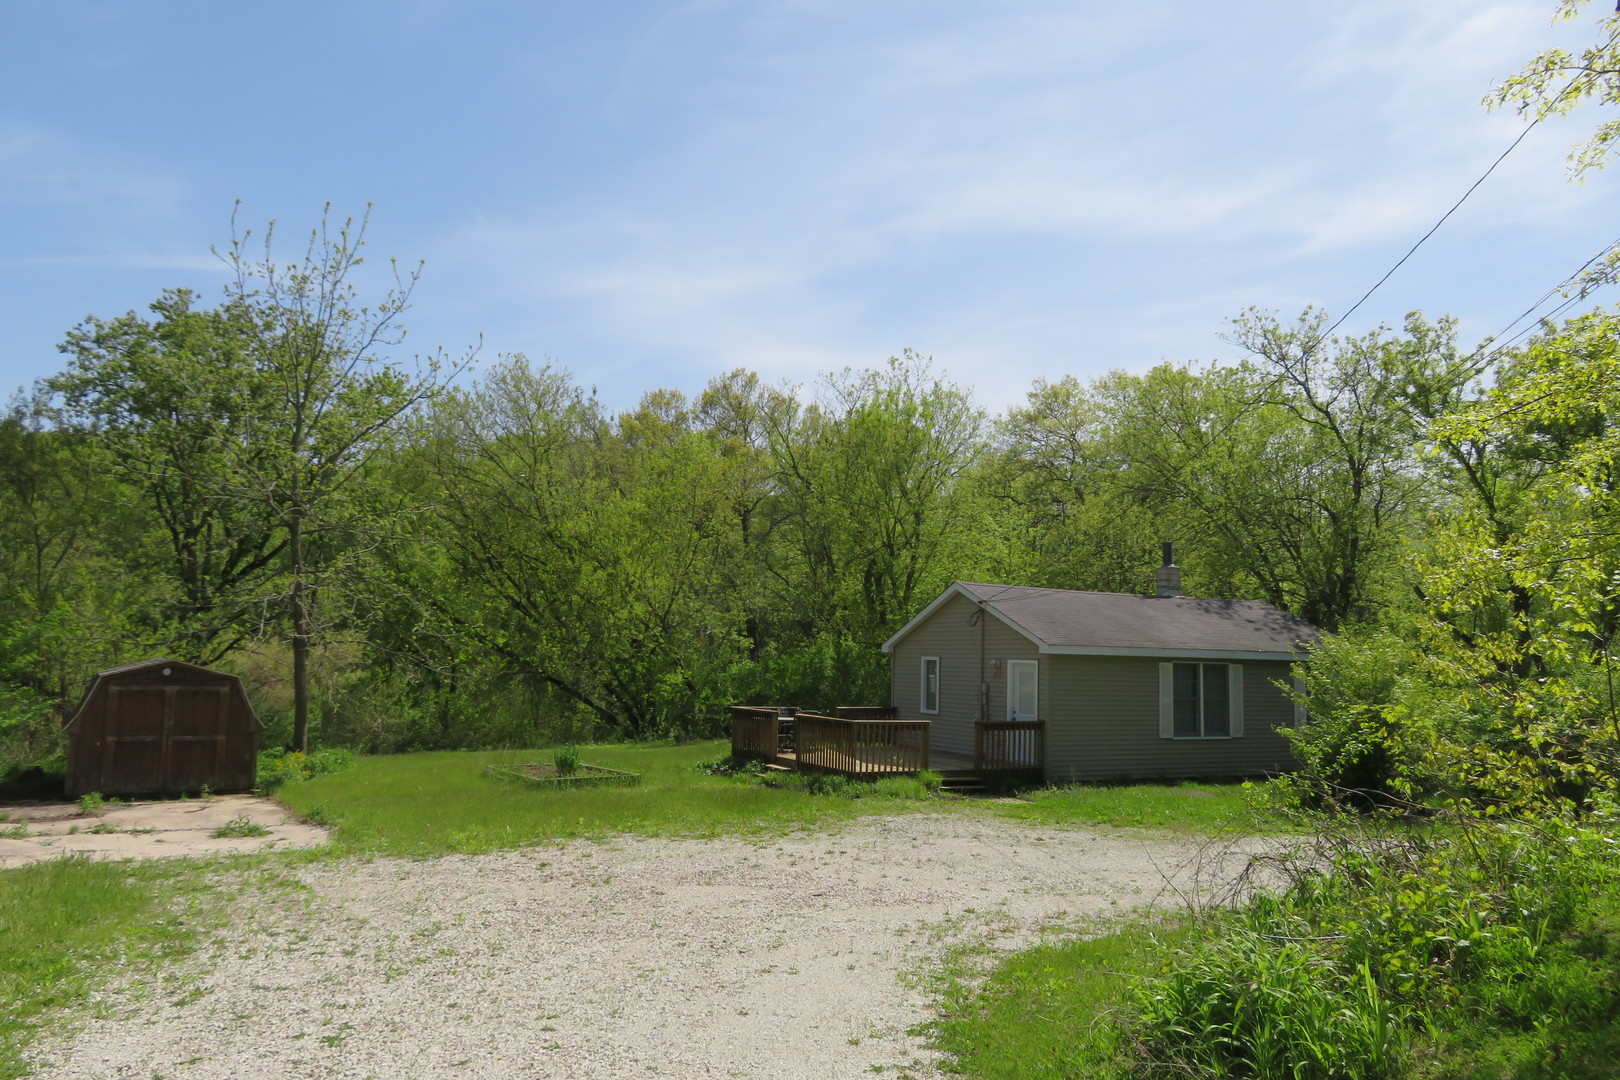 201 West Grass Lake Drive, Spring Grove, Illinois 60081